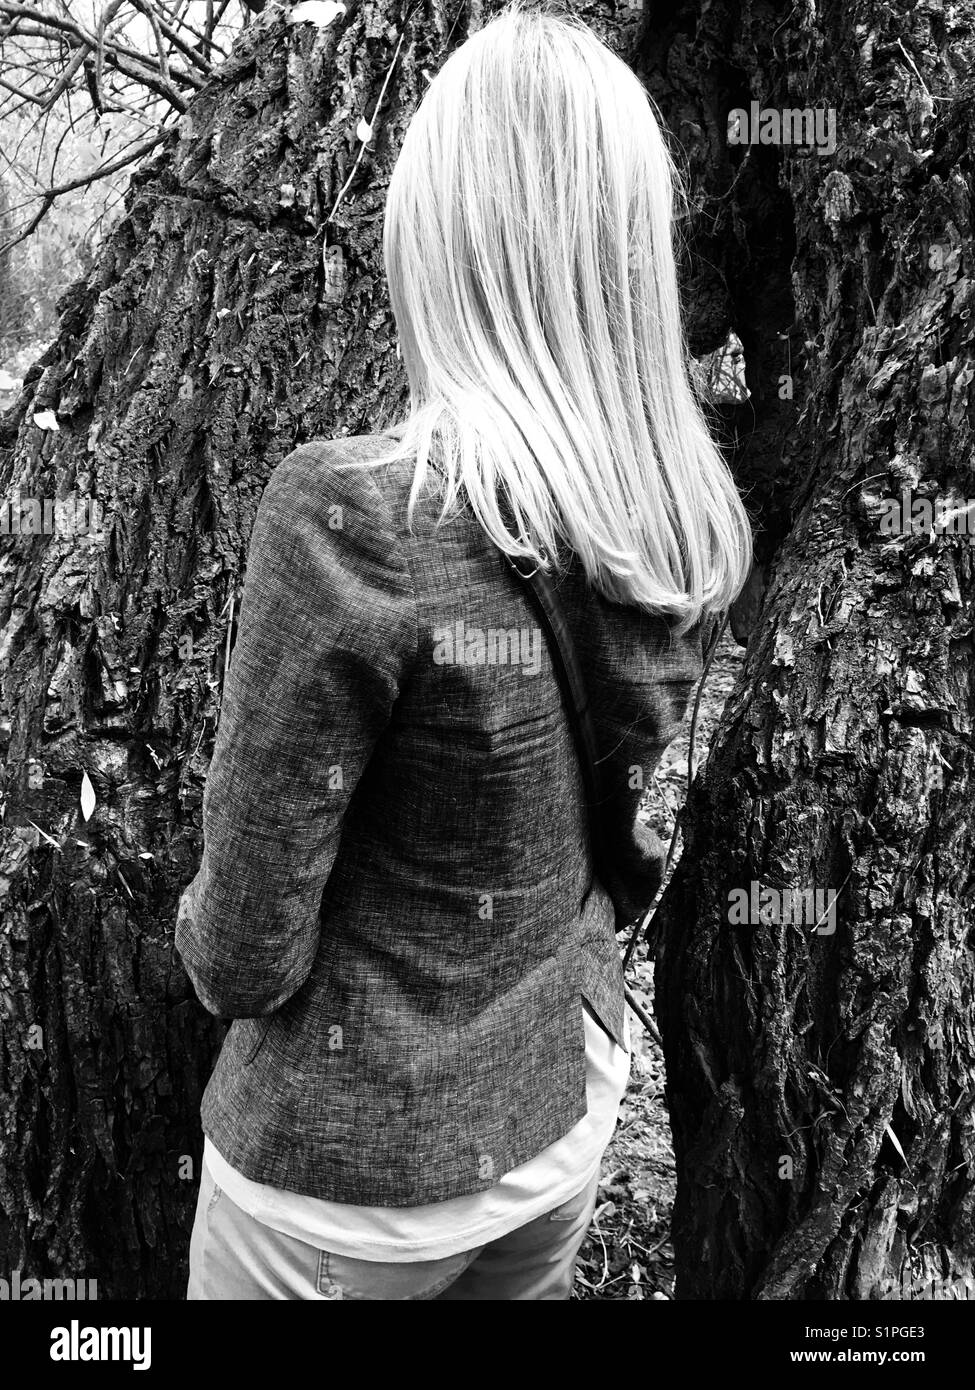 Standing next to an old tree - Stock Image